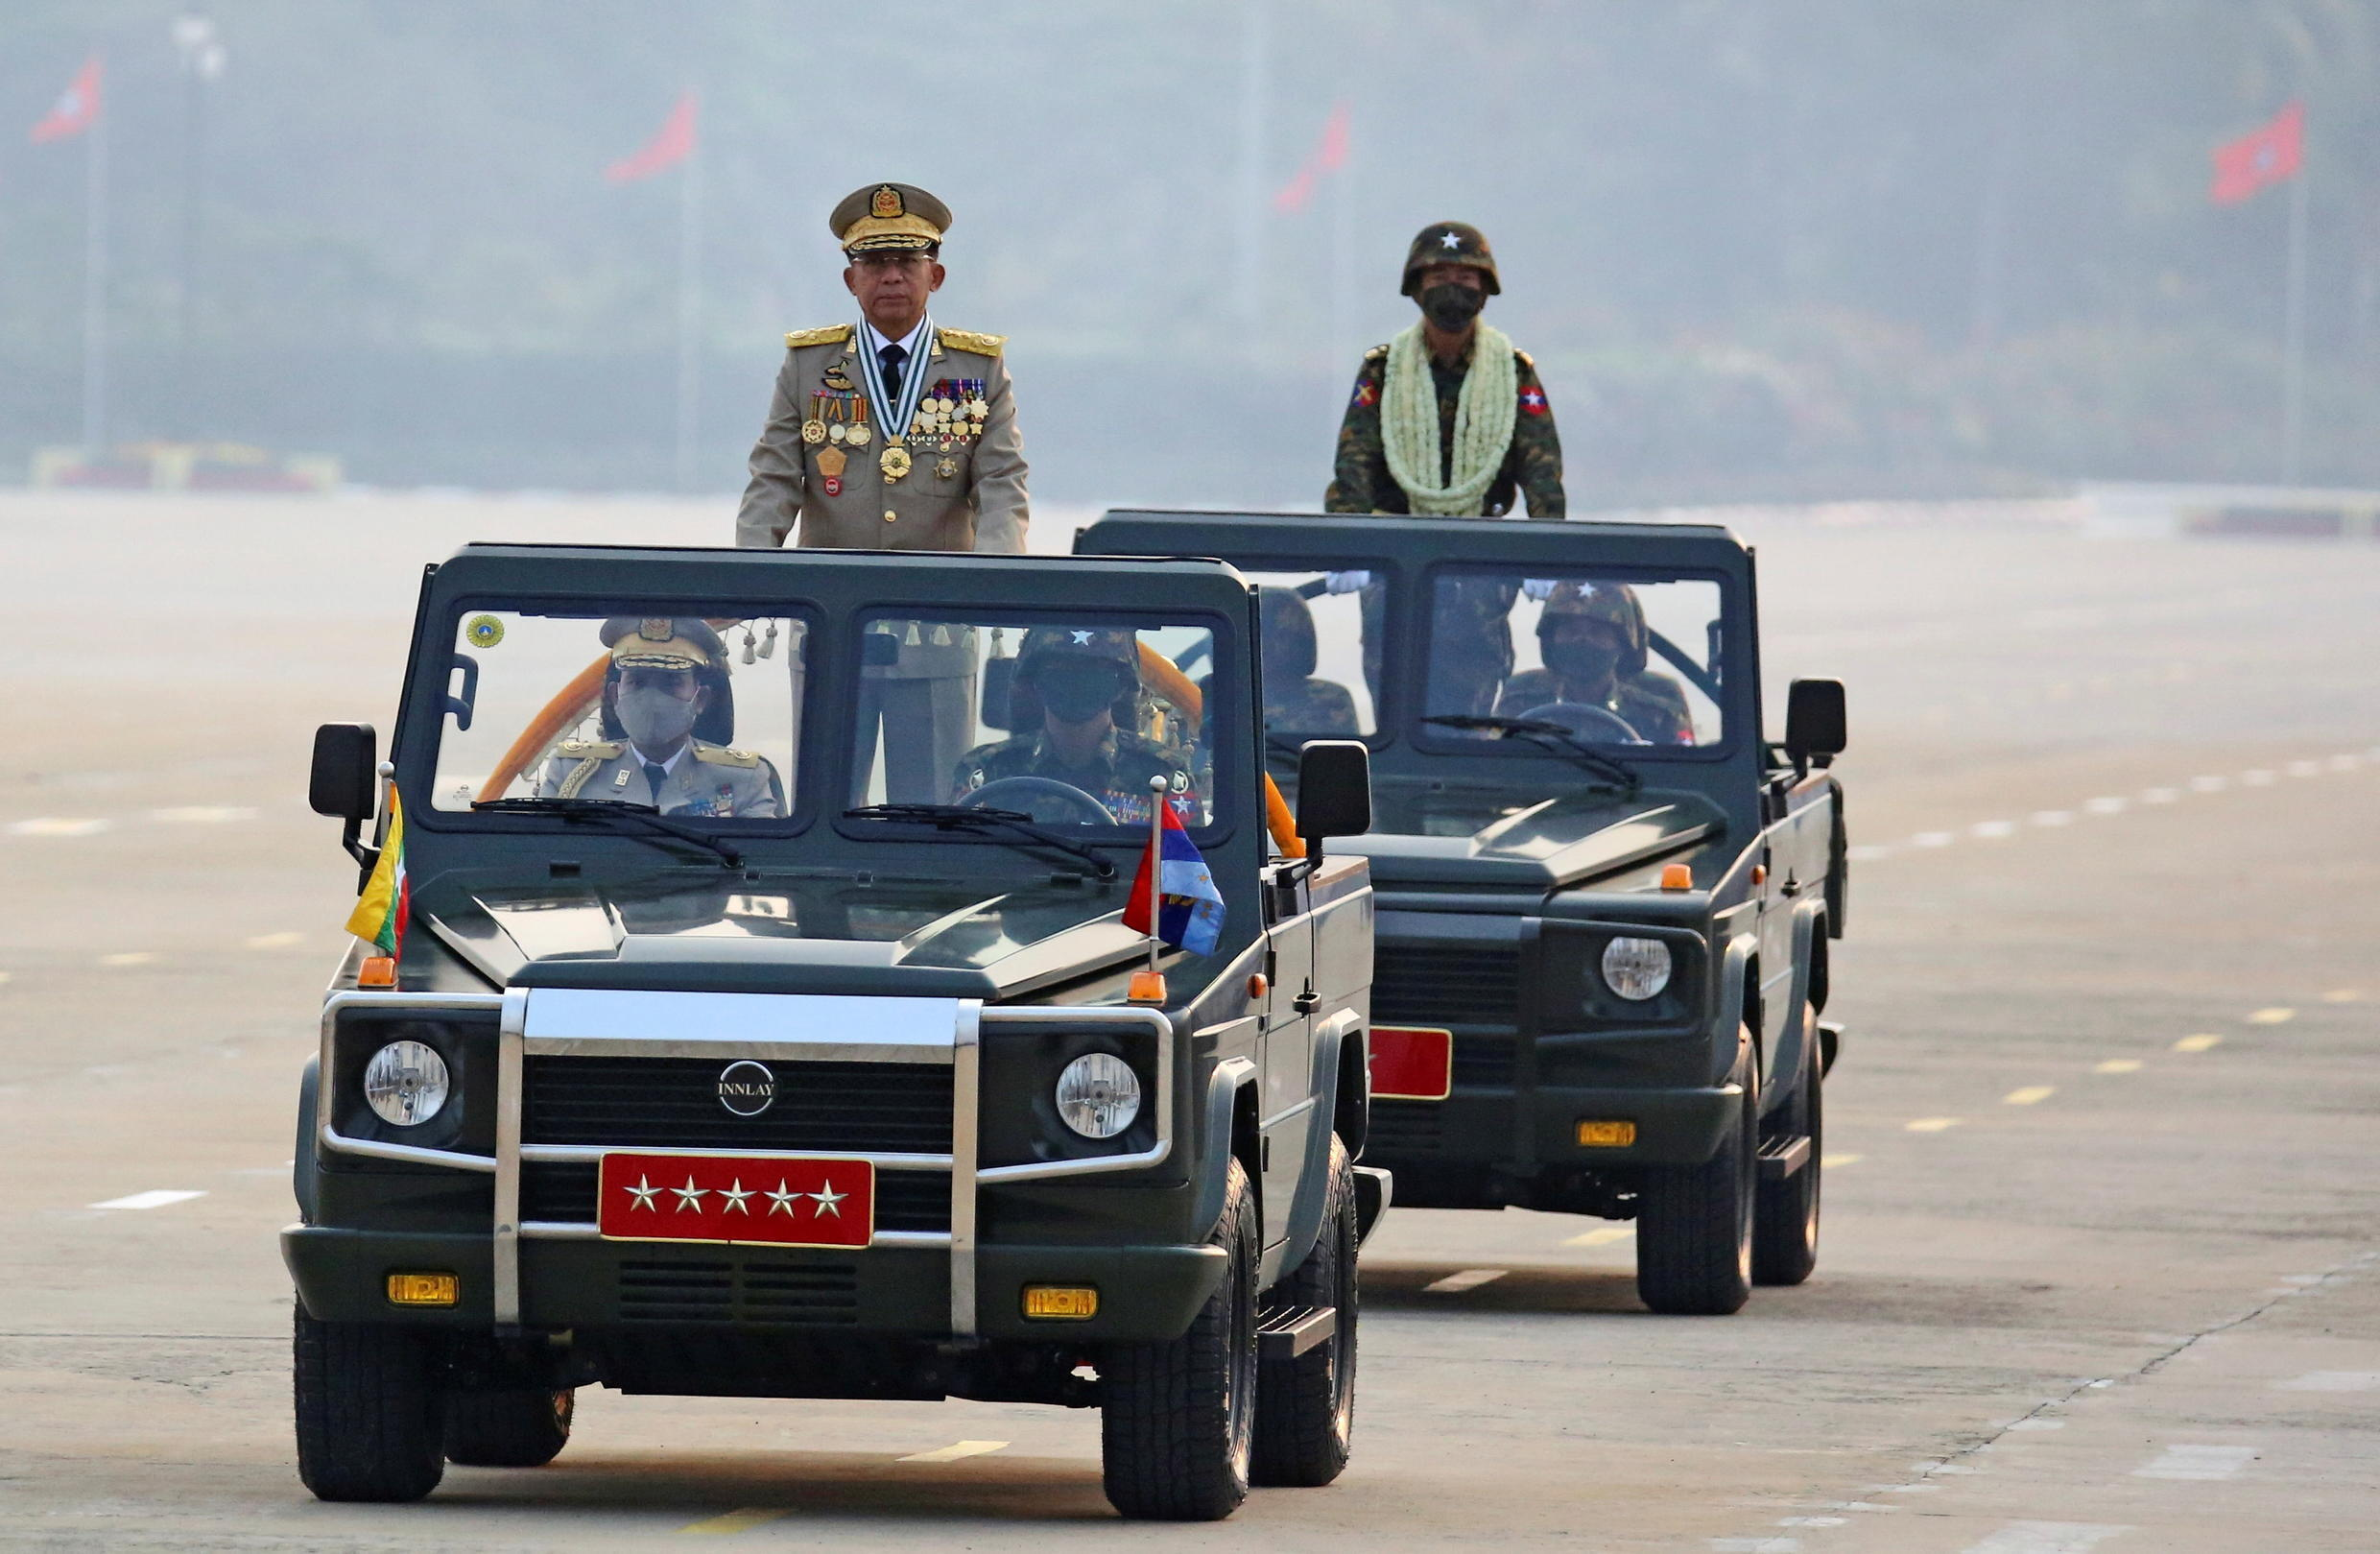 The leader of the Burmese military junta, General Min Aung Hlaing during the parade.